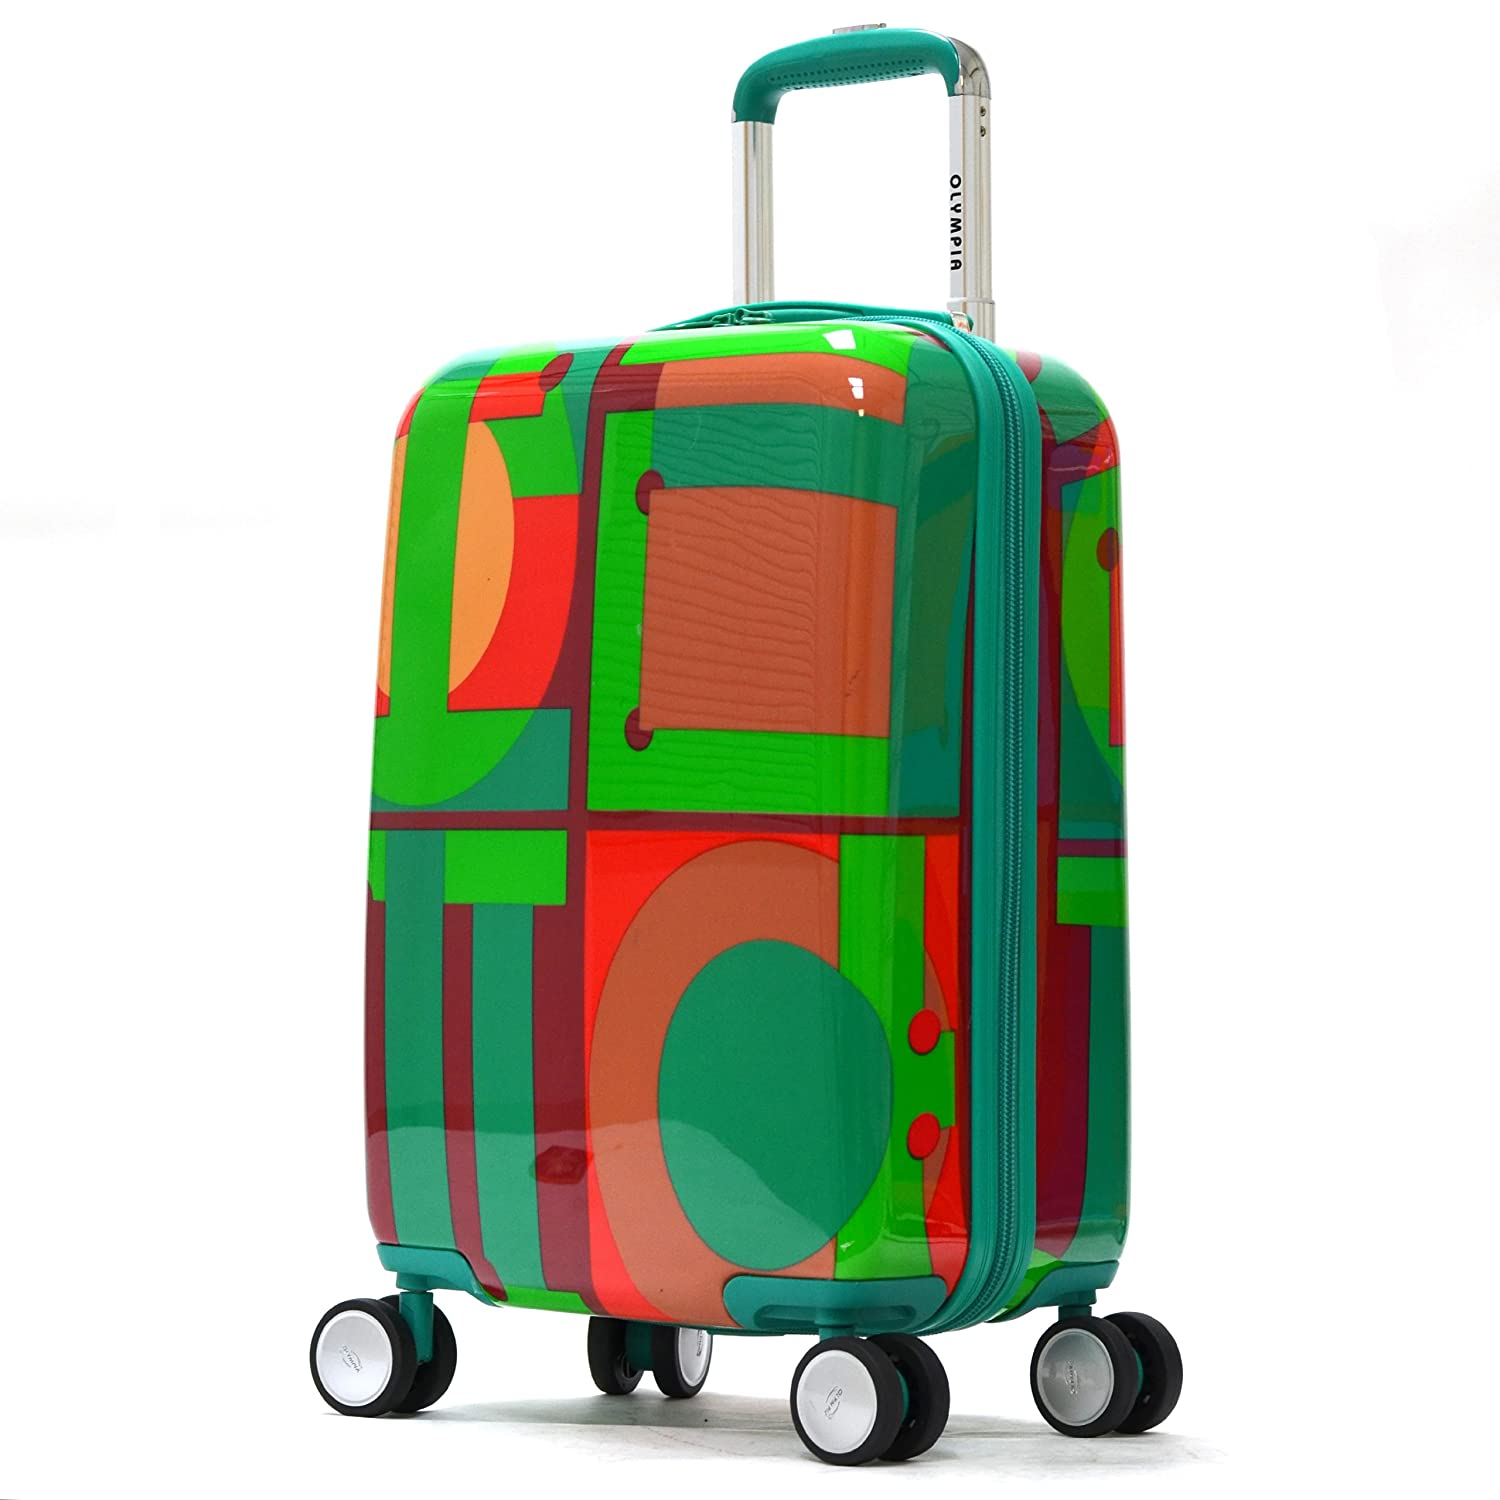 Olympia Luggage Art Series 21 Inch Carry-on, Peacock Green, One Size